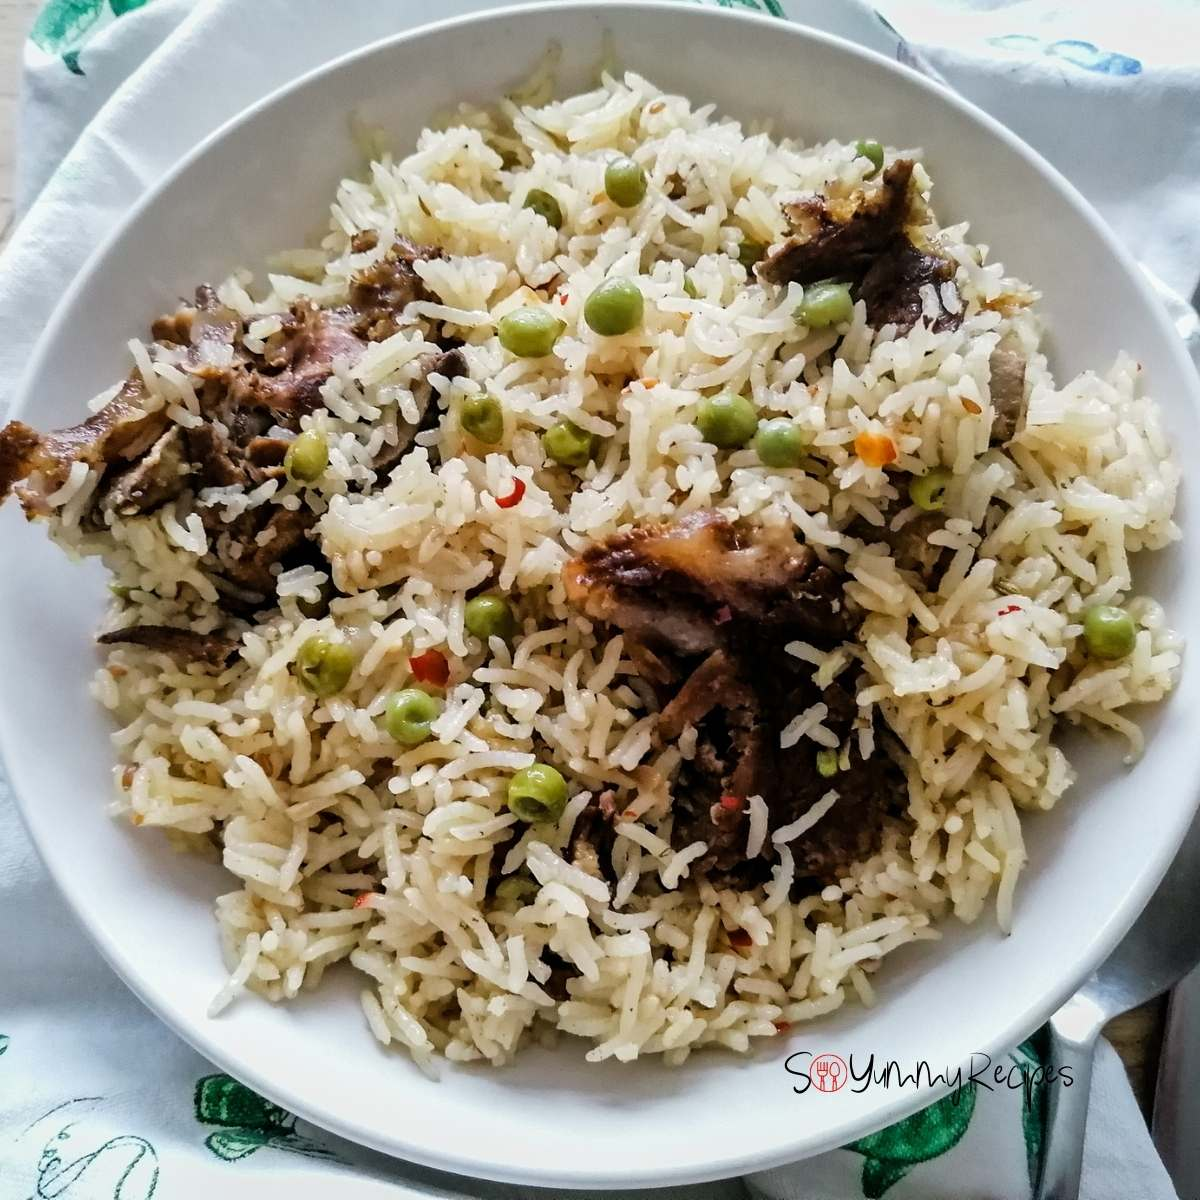 A white plate of Yakhni mutton pulao rice with green peas.